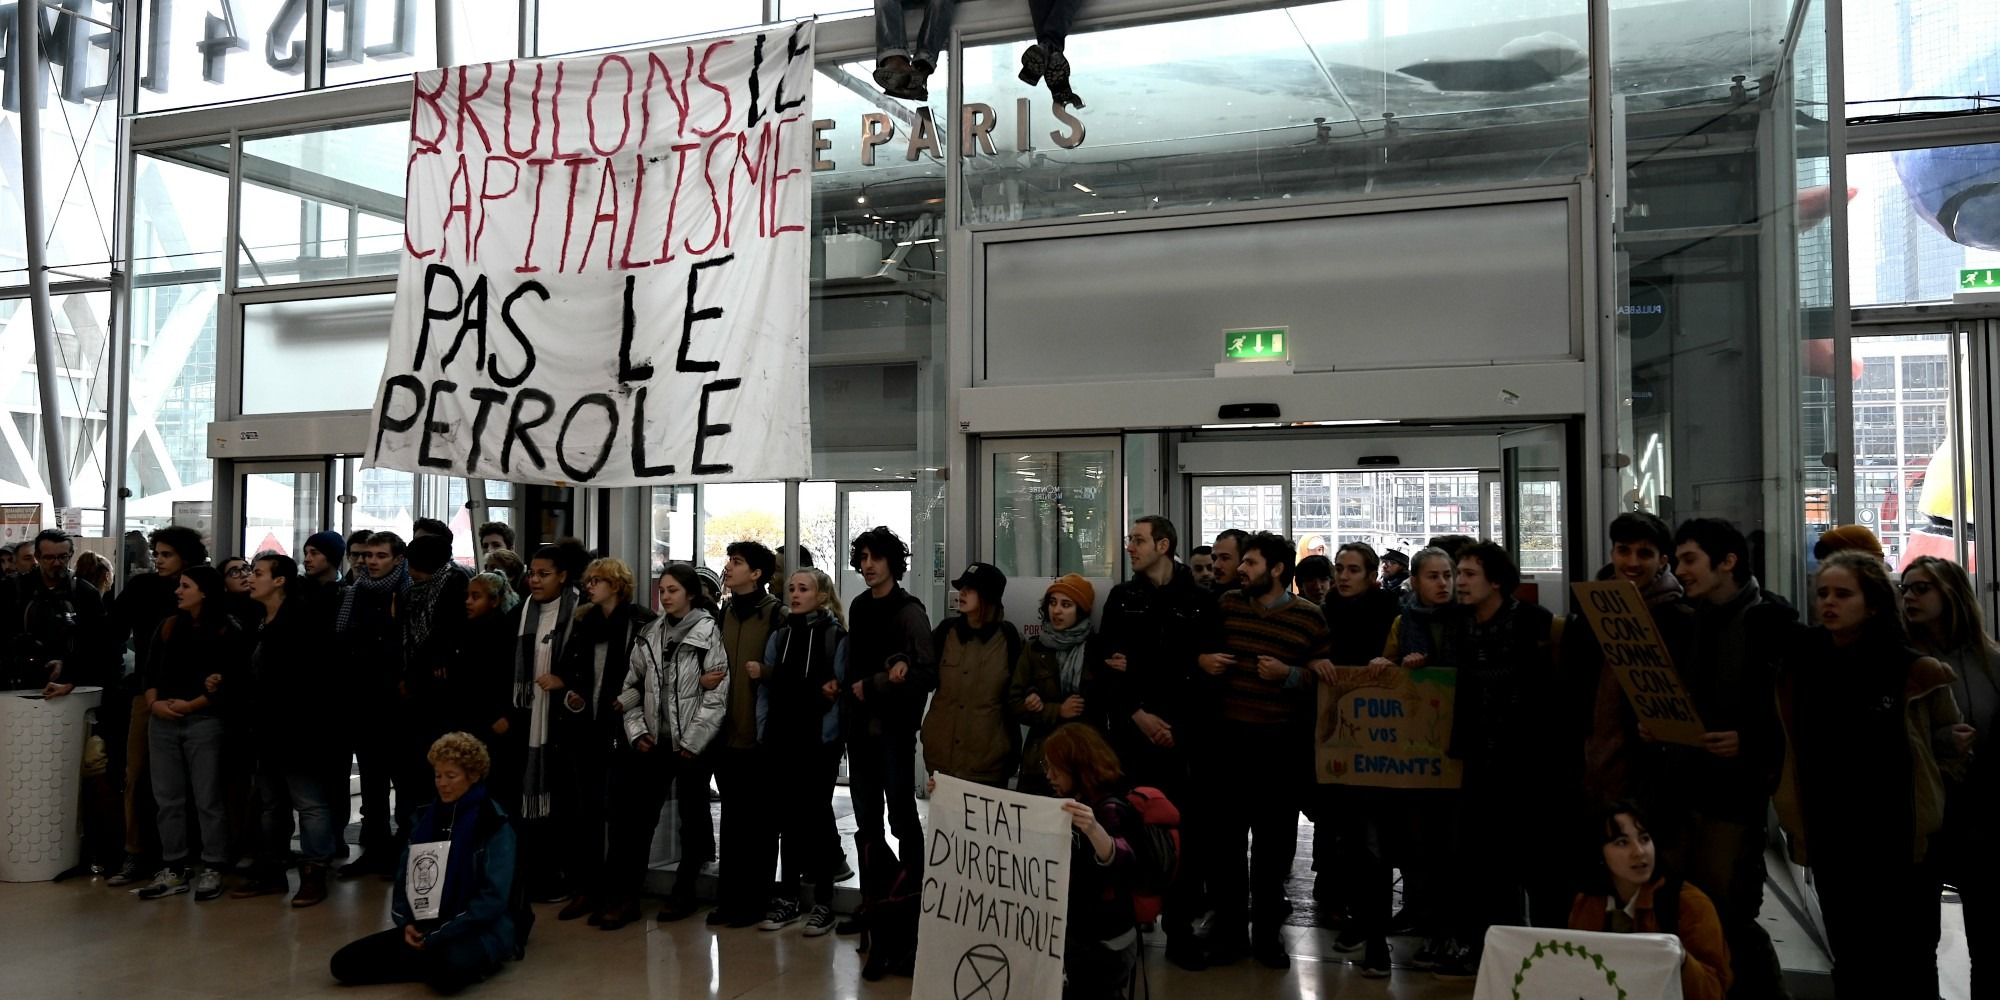 Anti Black Friday Action At Defense Activists Denounce A Symbol Of Ultra Capitalism And Over Consumption Teller Report